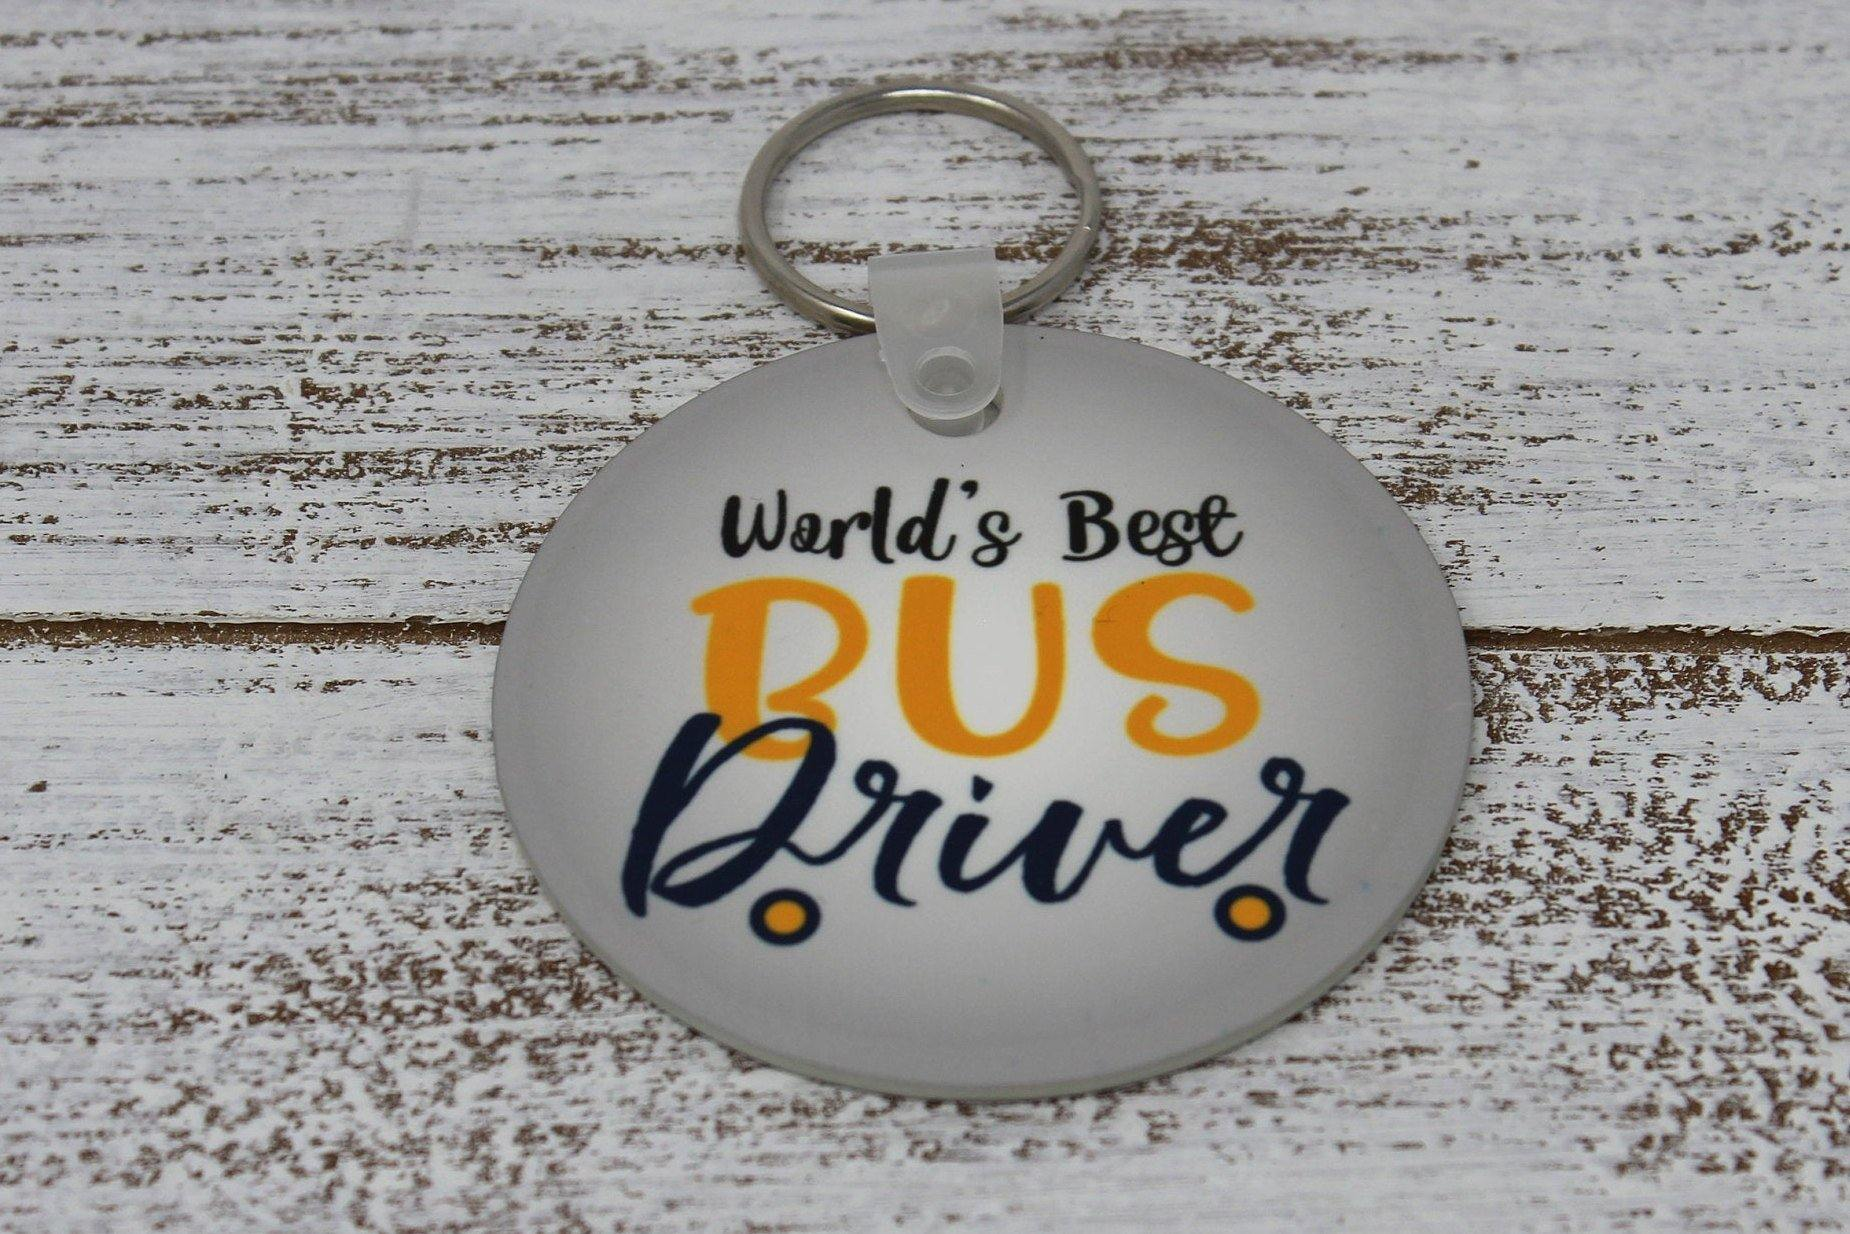 Keychains | Monogrammed Key Chain | Personalized Key Chain | Bus Driver | This and That Solutions | Personalized Gifts | Custom Home Décor